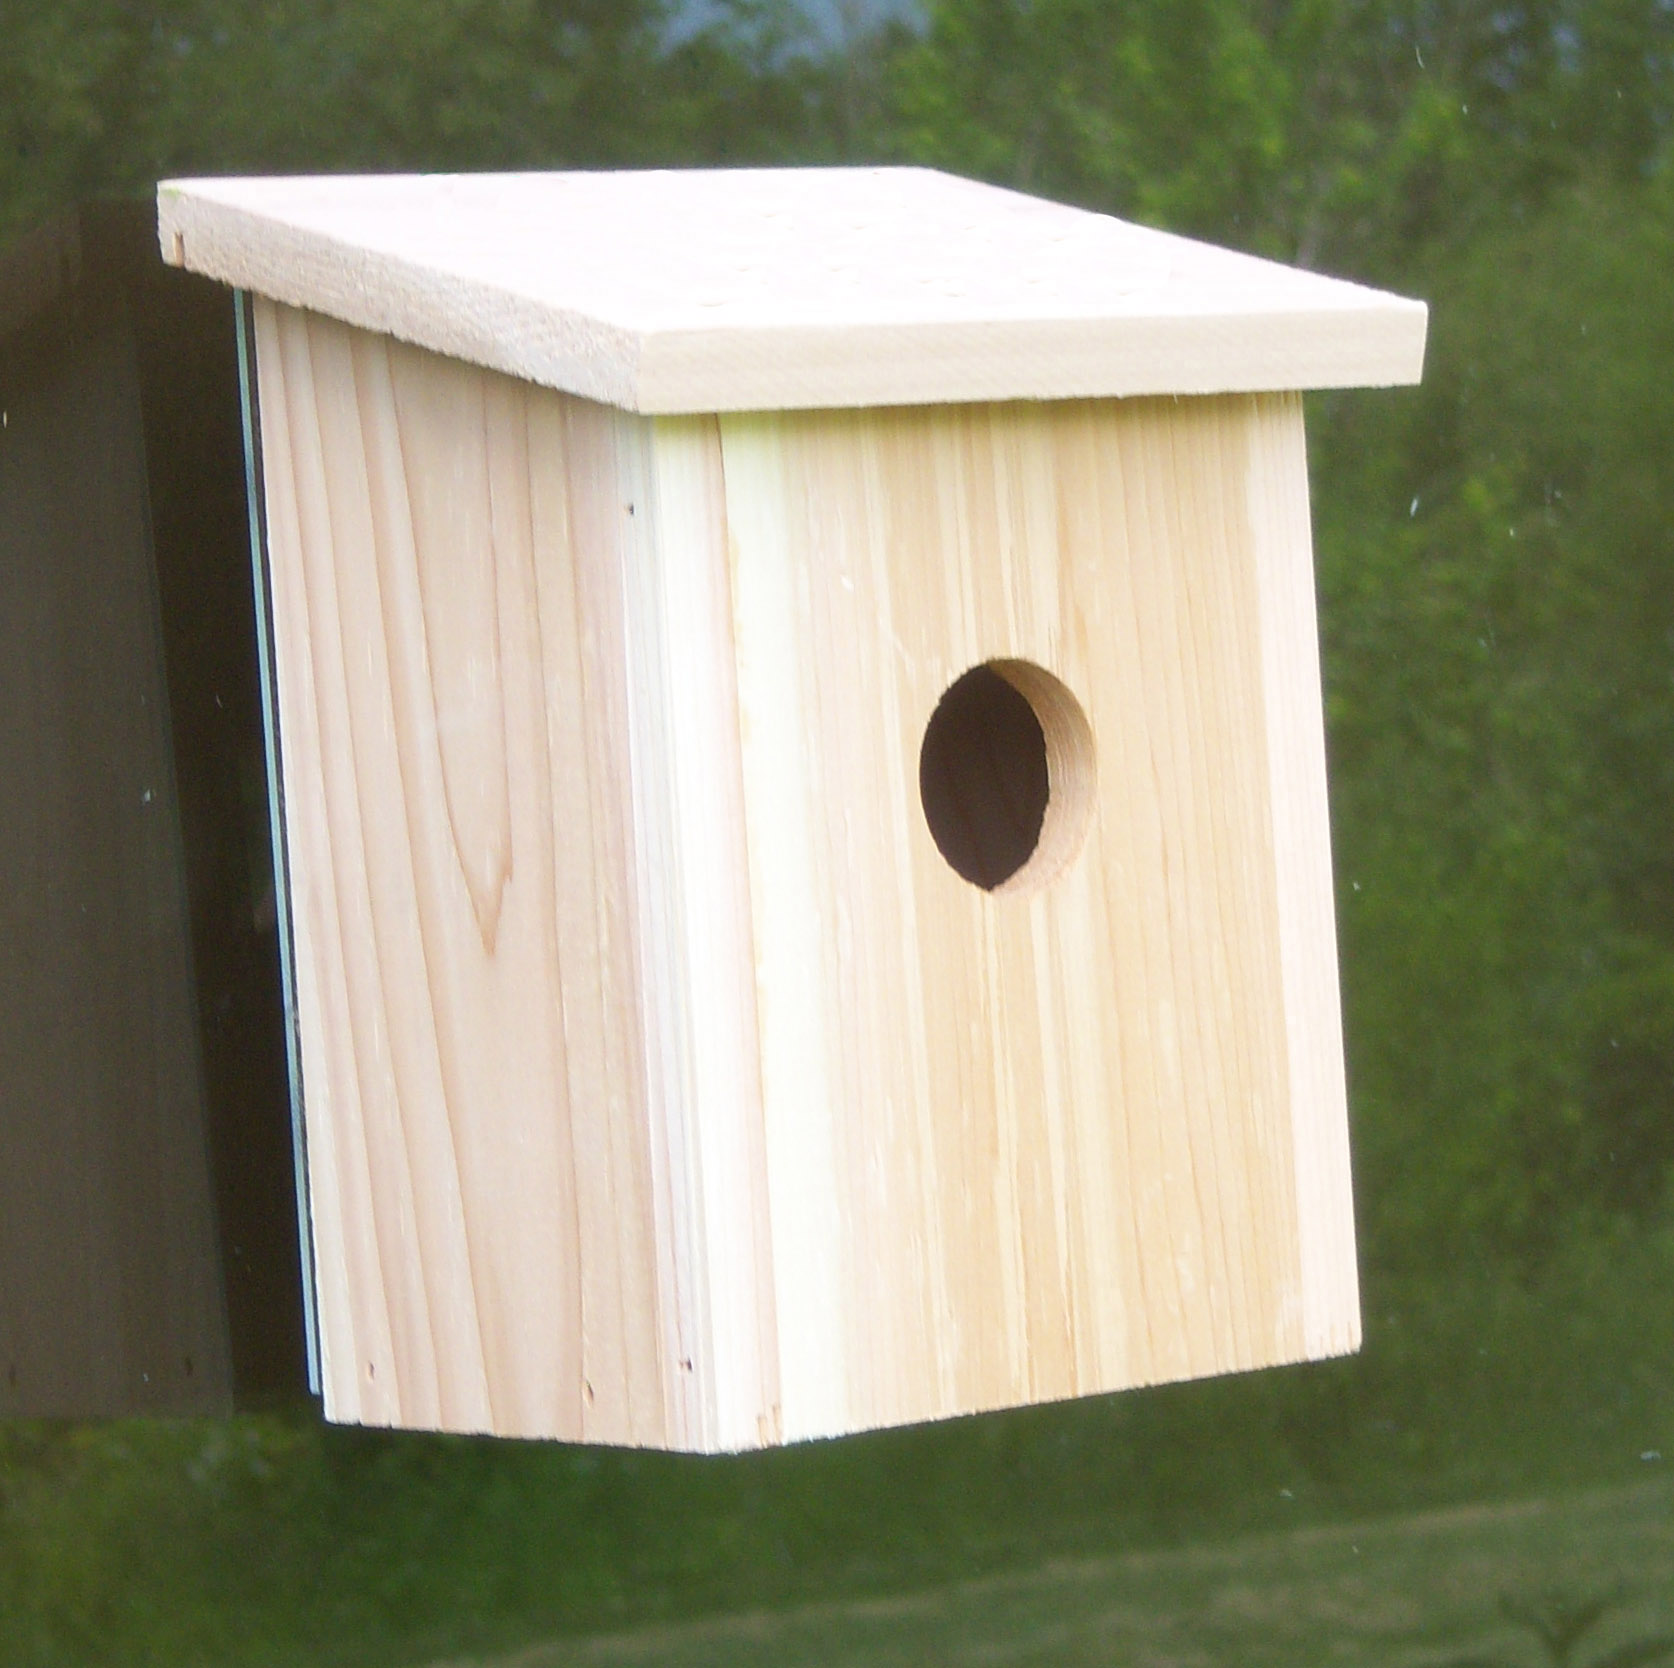 Window bird house - Songbird Essentials Nest View Bird House